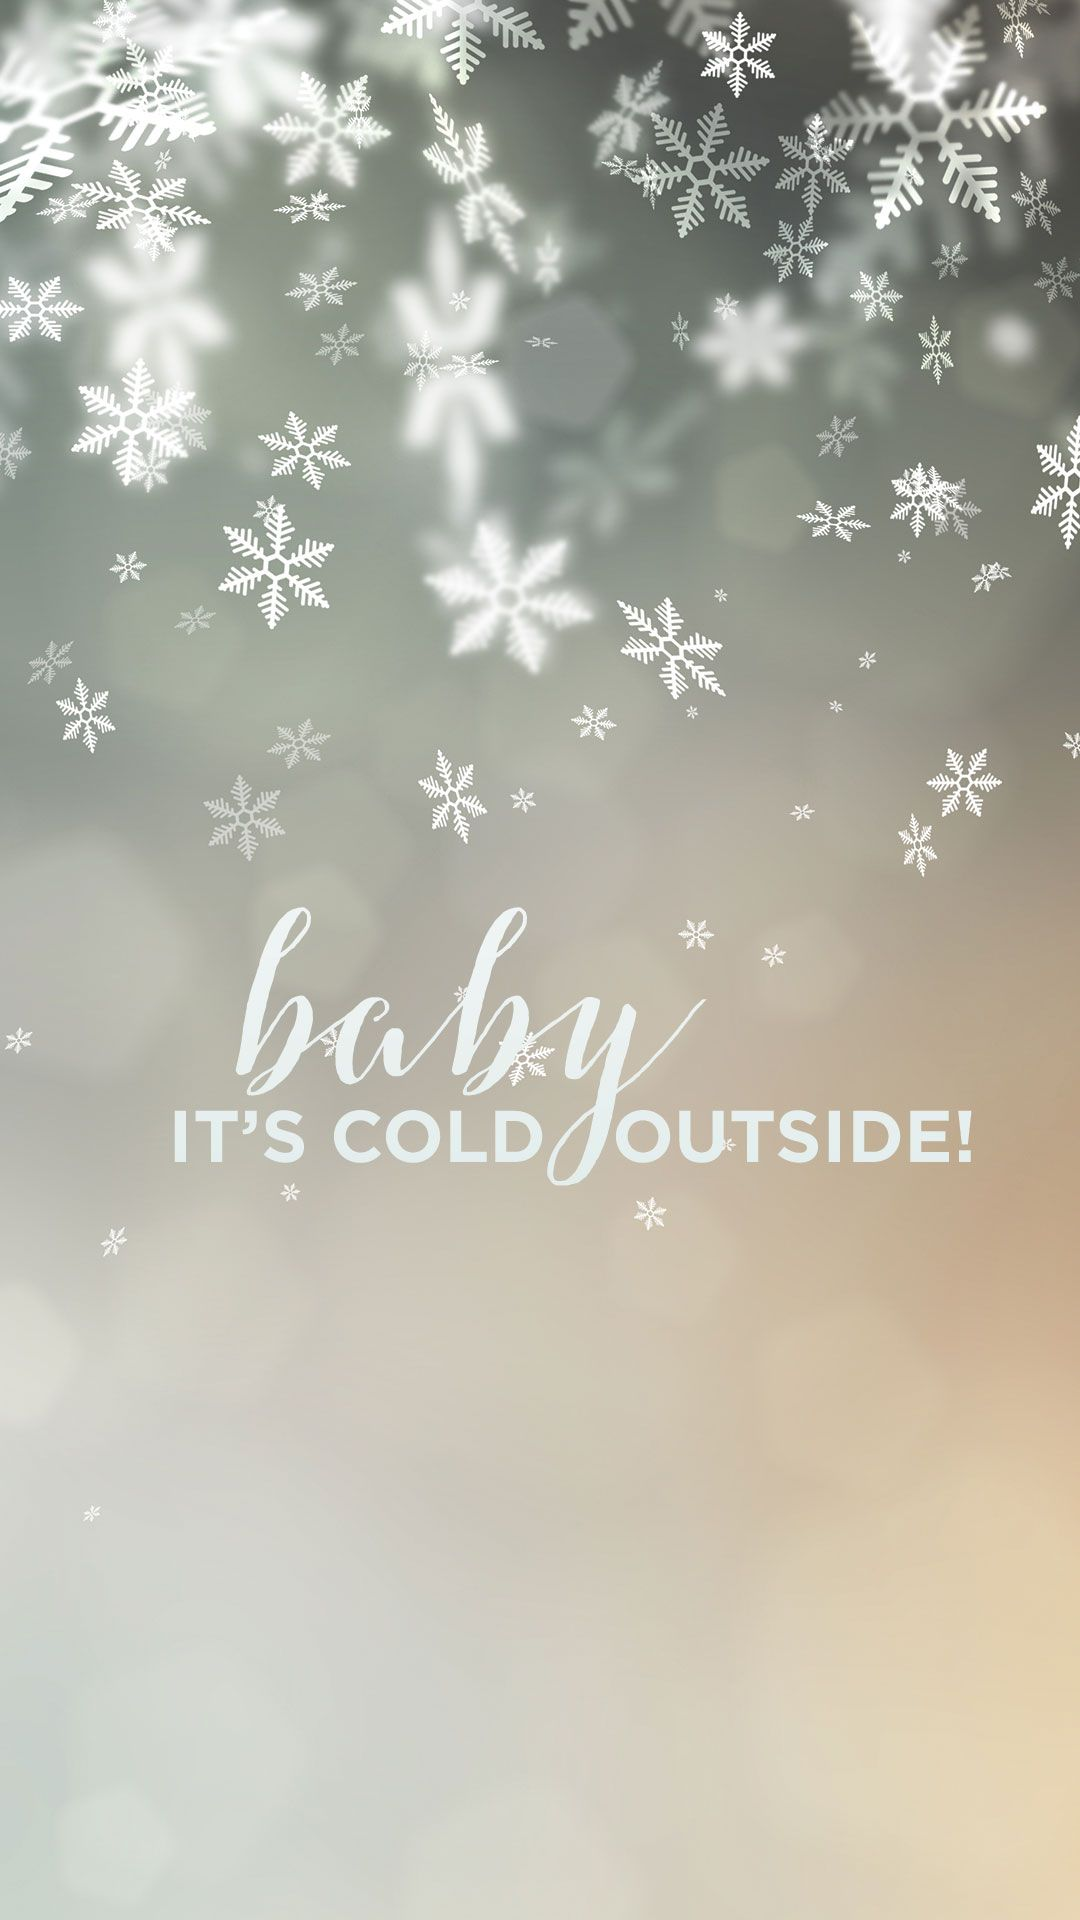 Baby Its Cold Outside wallpaper | Wallpapers | Christmas wallpaper, Winter wallpaper, Holiday ...